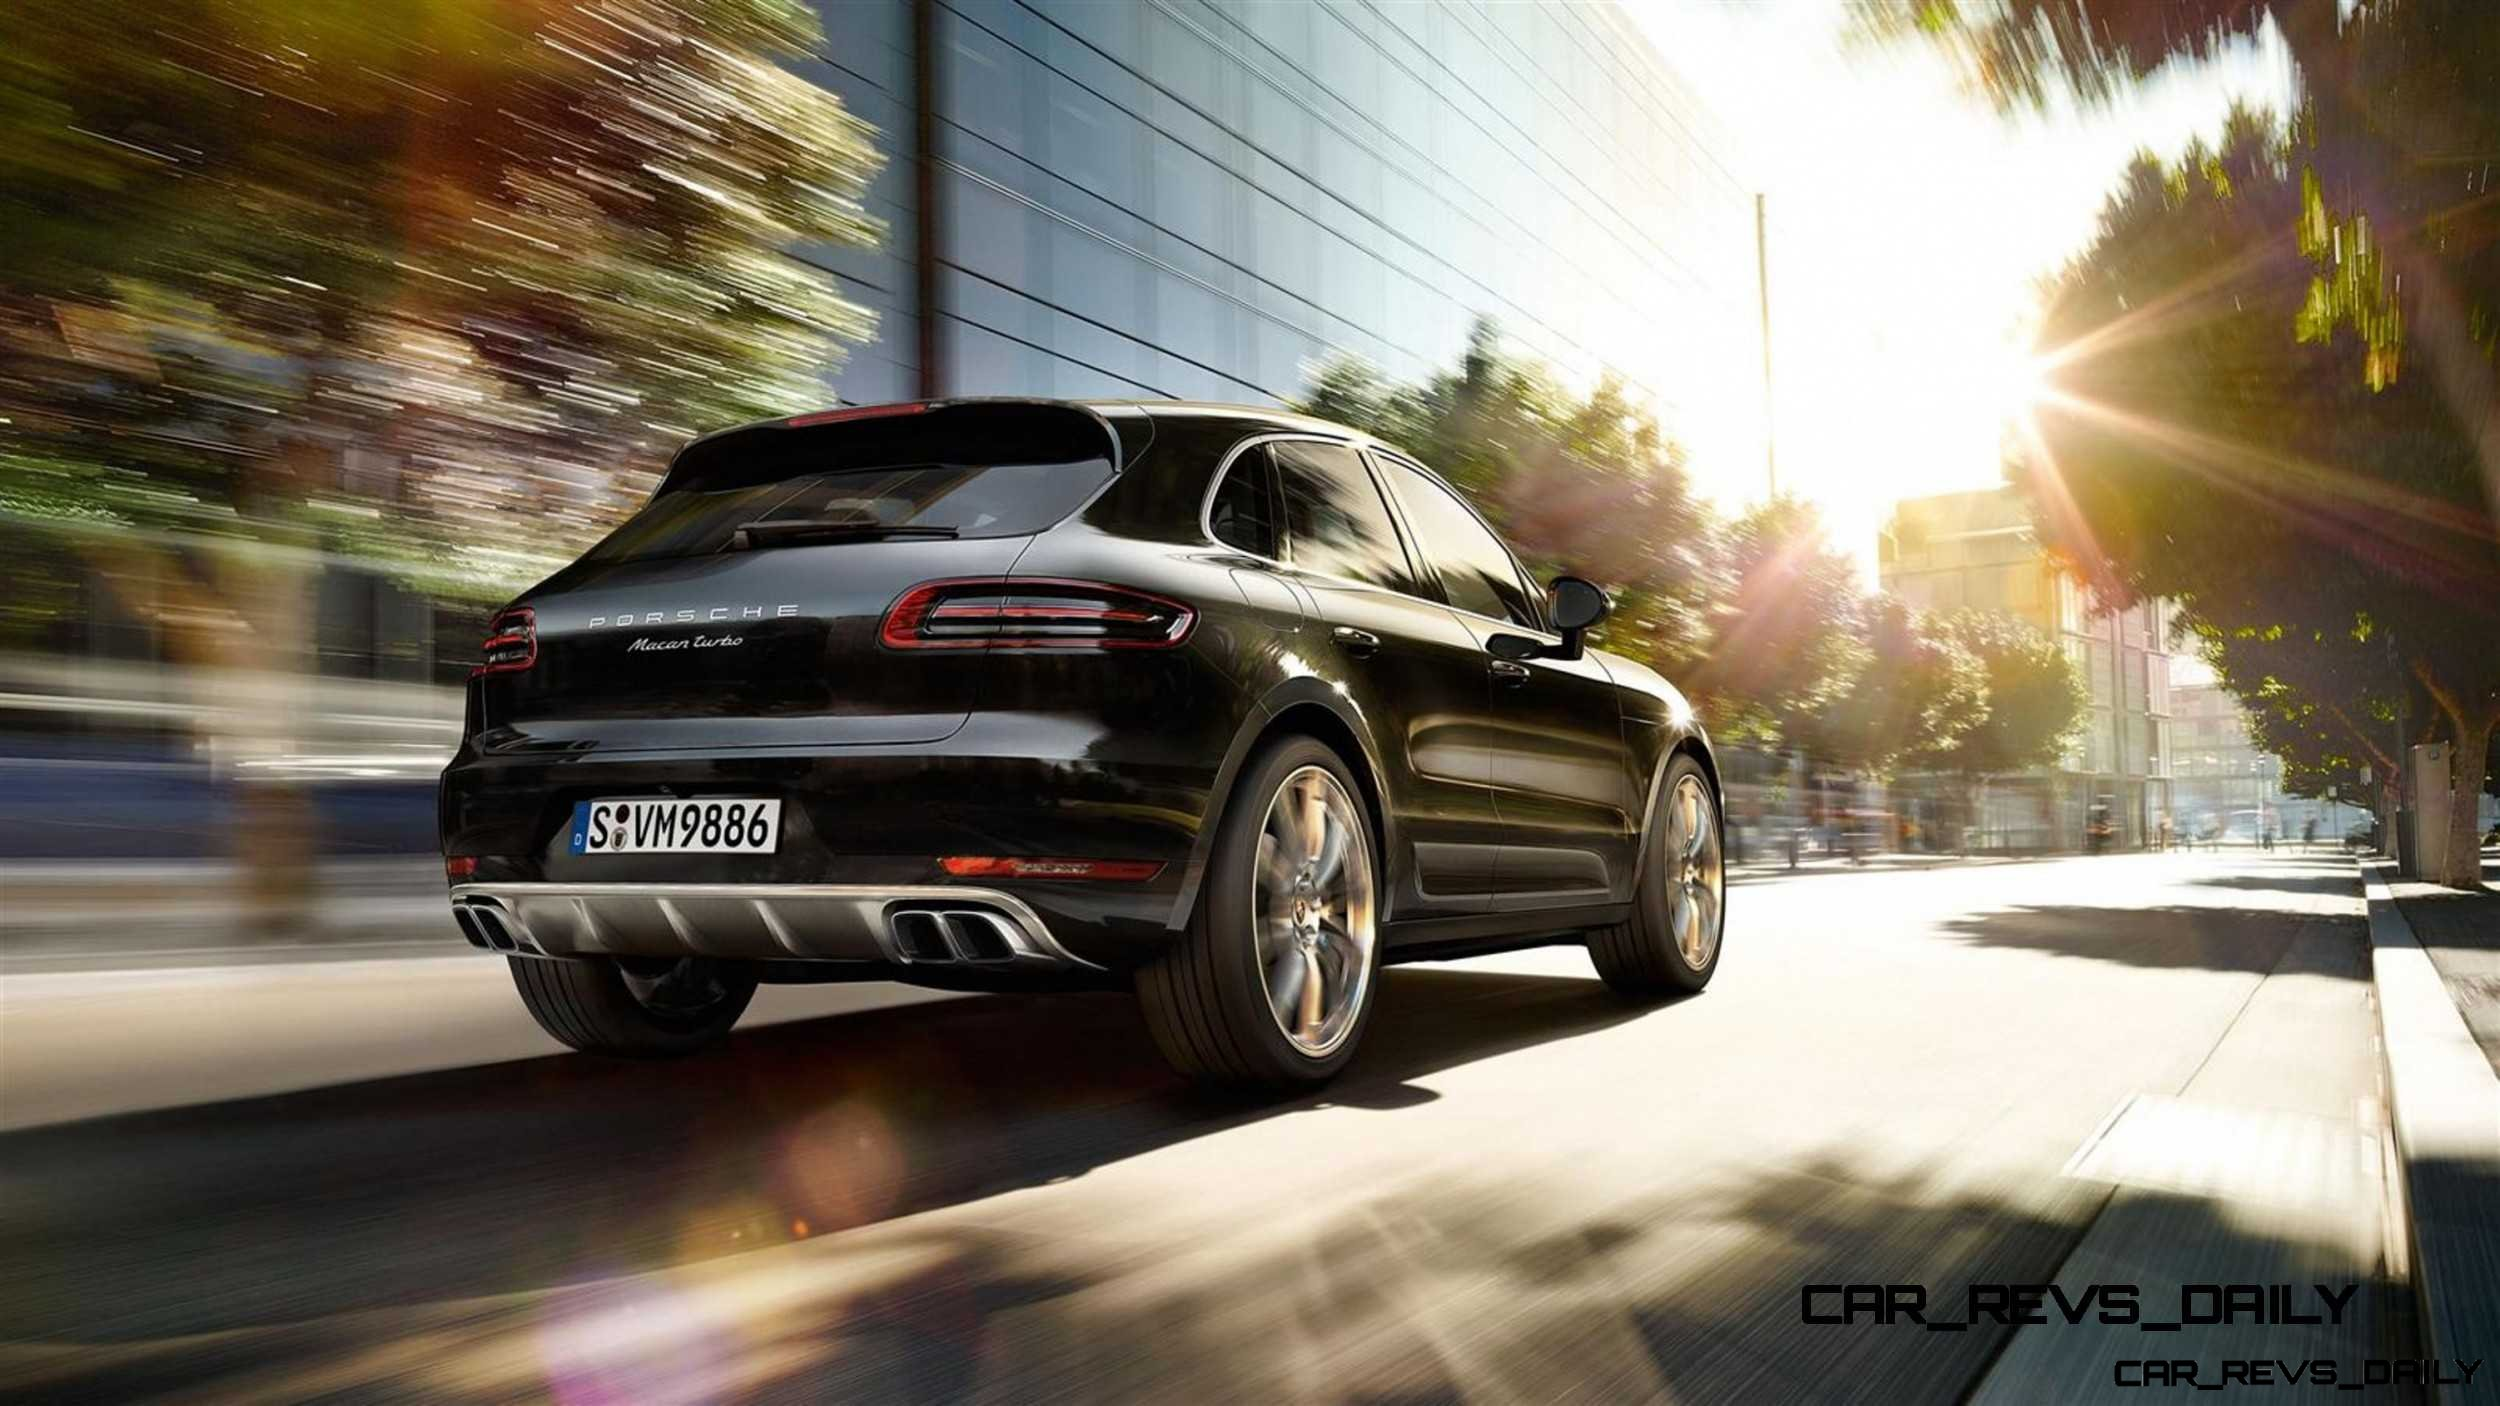 2015 Porsche Macan - Latest Images - CarRevsDaily.com 24